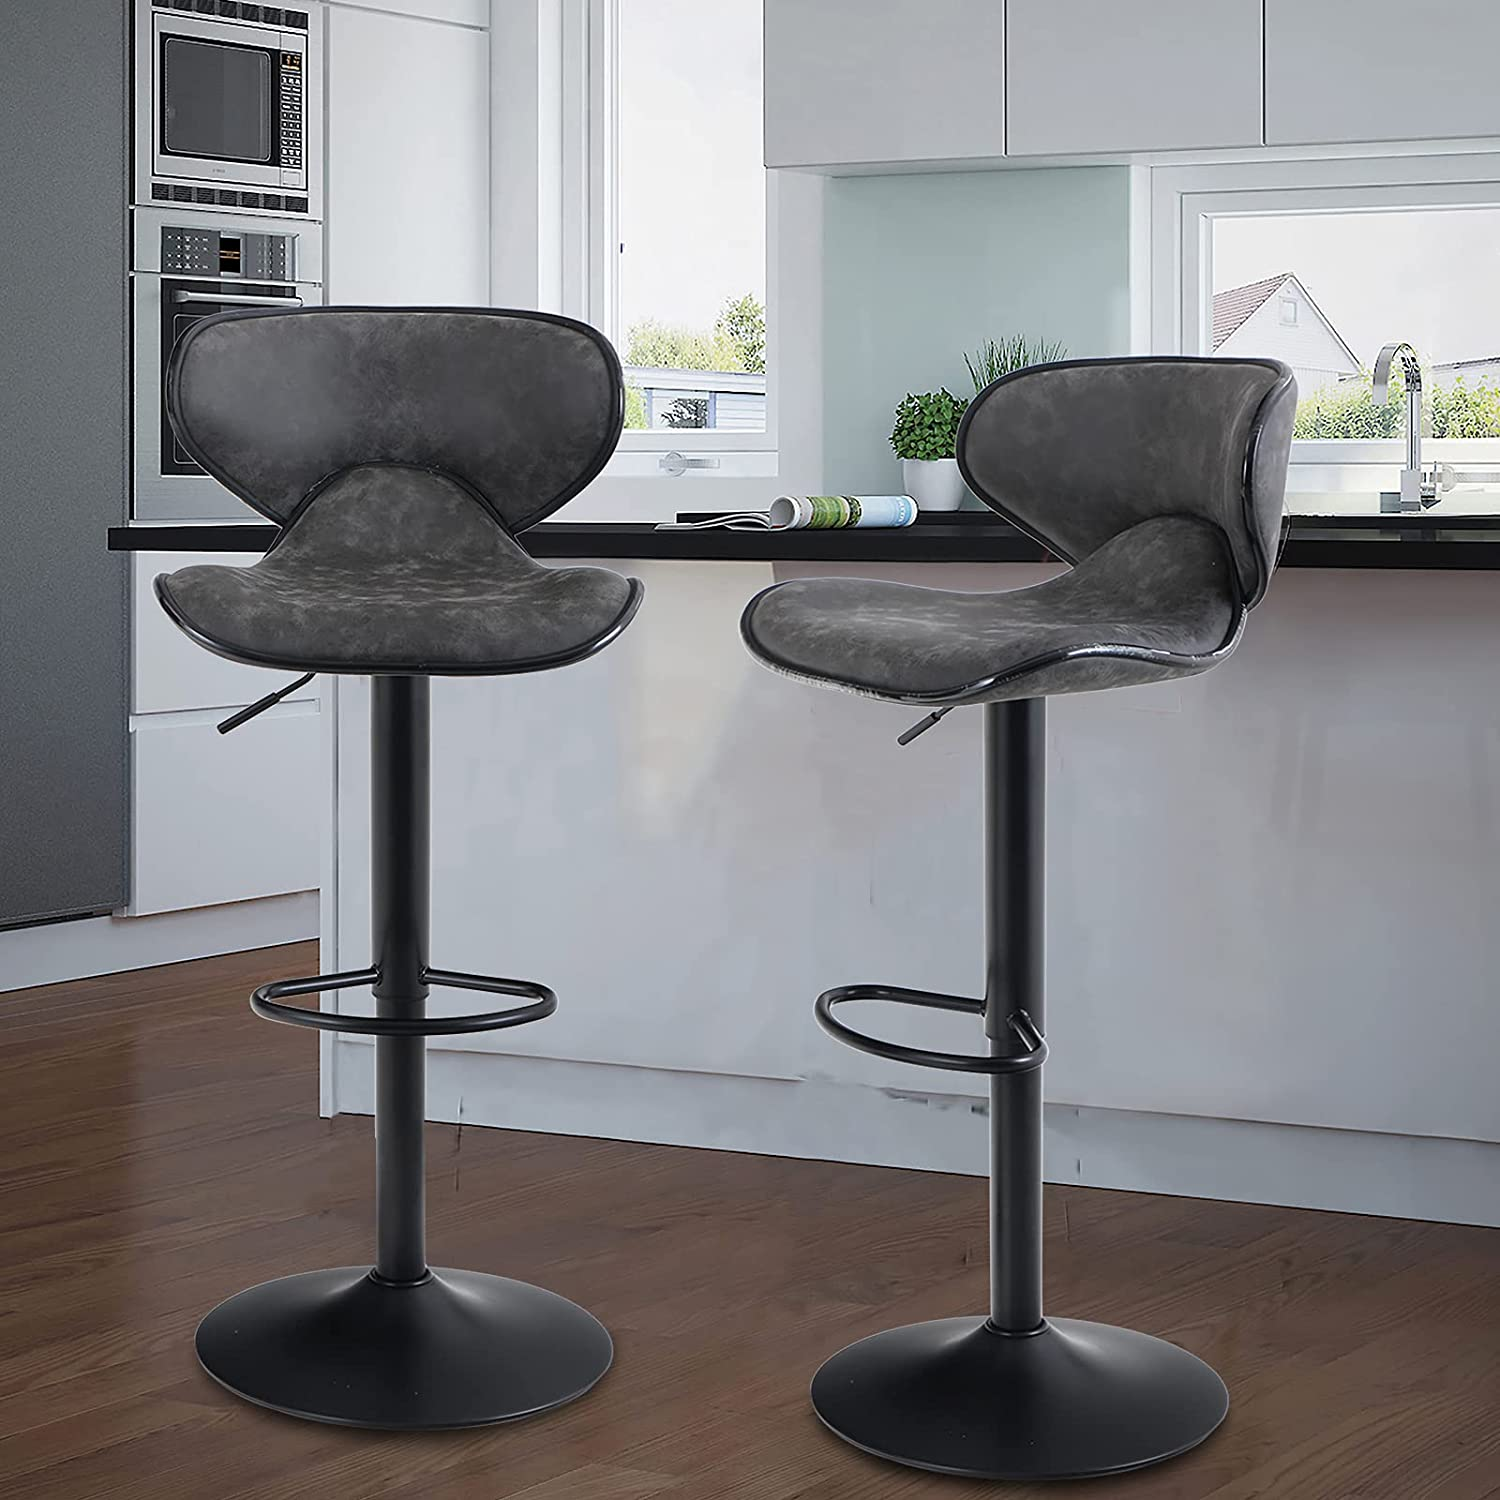 Maison Counter Height Bar Stools Set of 9 Swivel Adjustable Barstools with  Back for Kitchen Counter Tall Bar Height Chairs Faux Leather High Stools ...